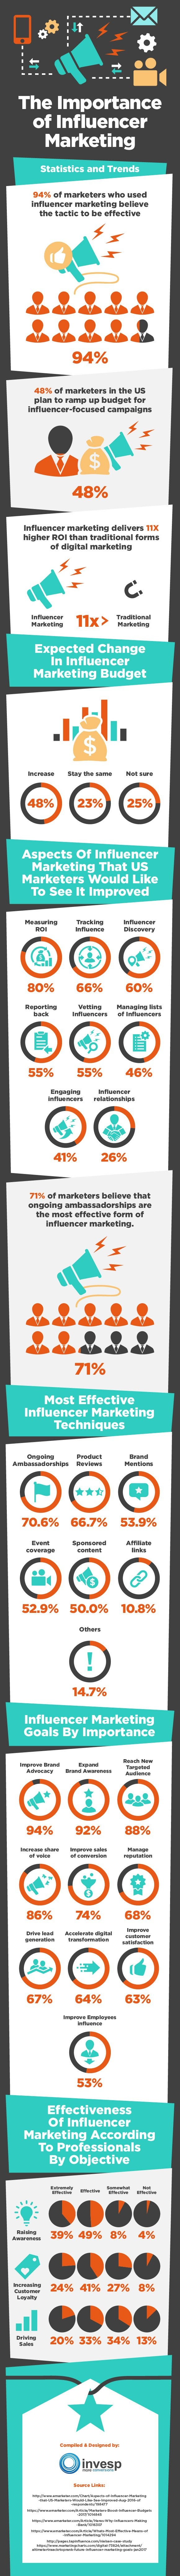 The Rising Importance of Influencer Marketing – Statistics and Trends [Infographic] | Social Media Today